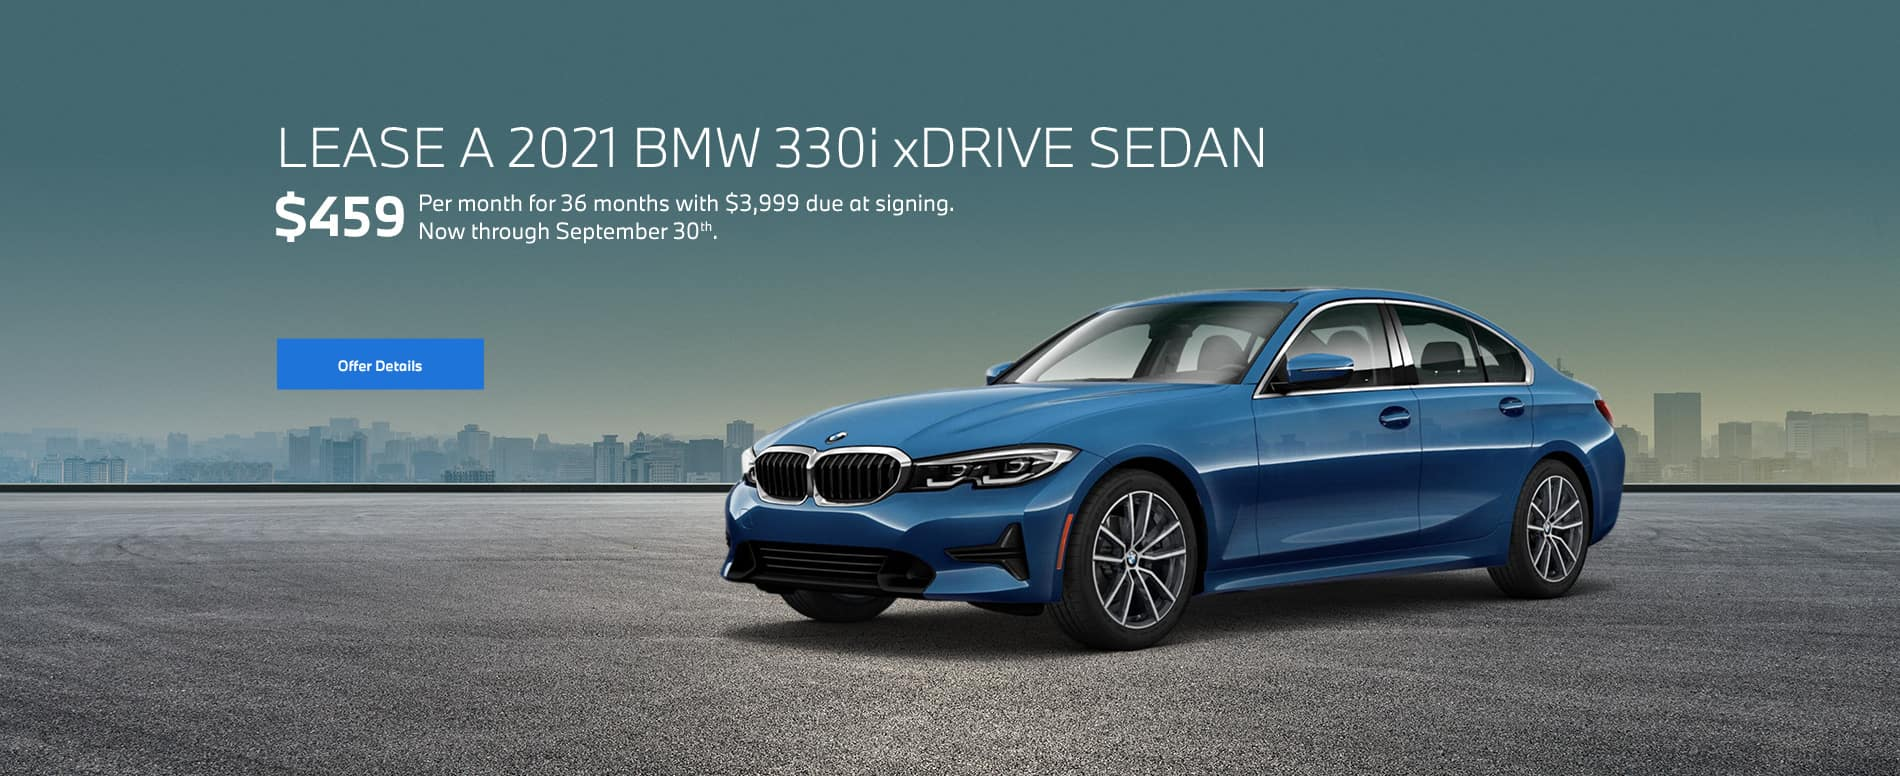 Blue 3 series with cityscape background